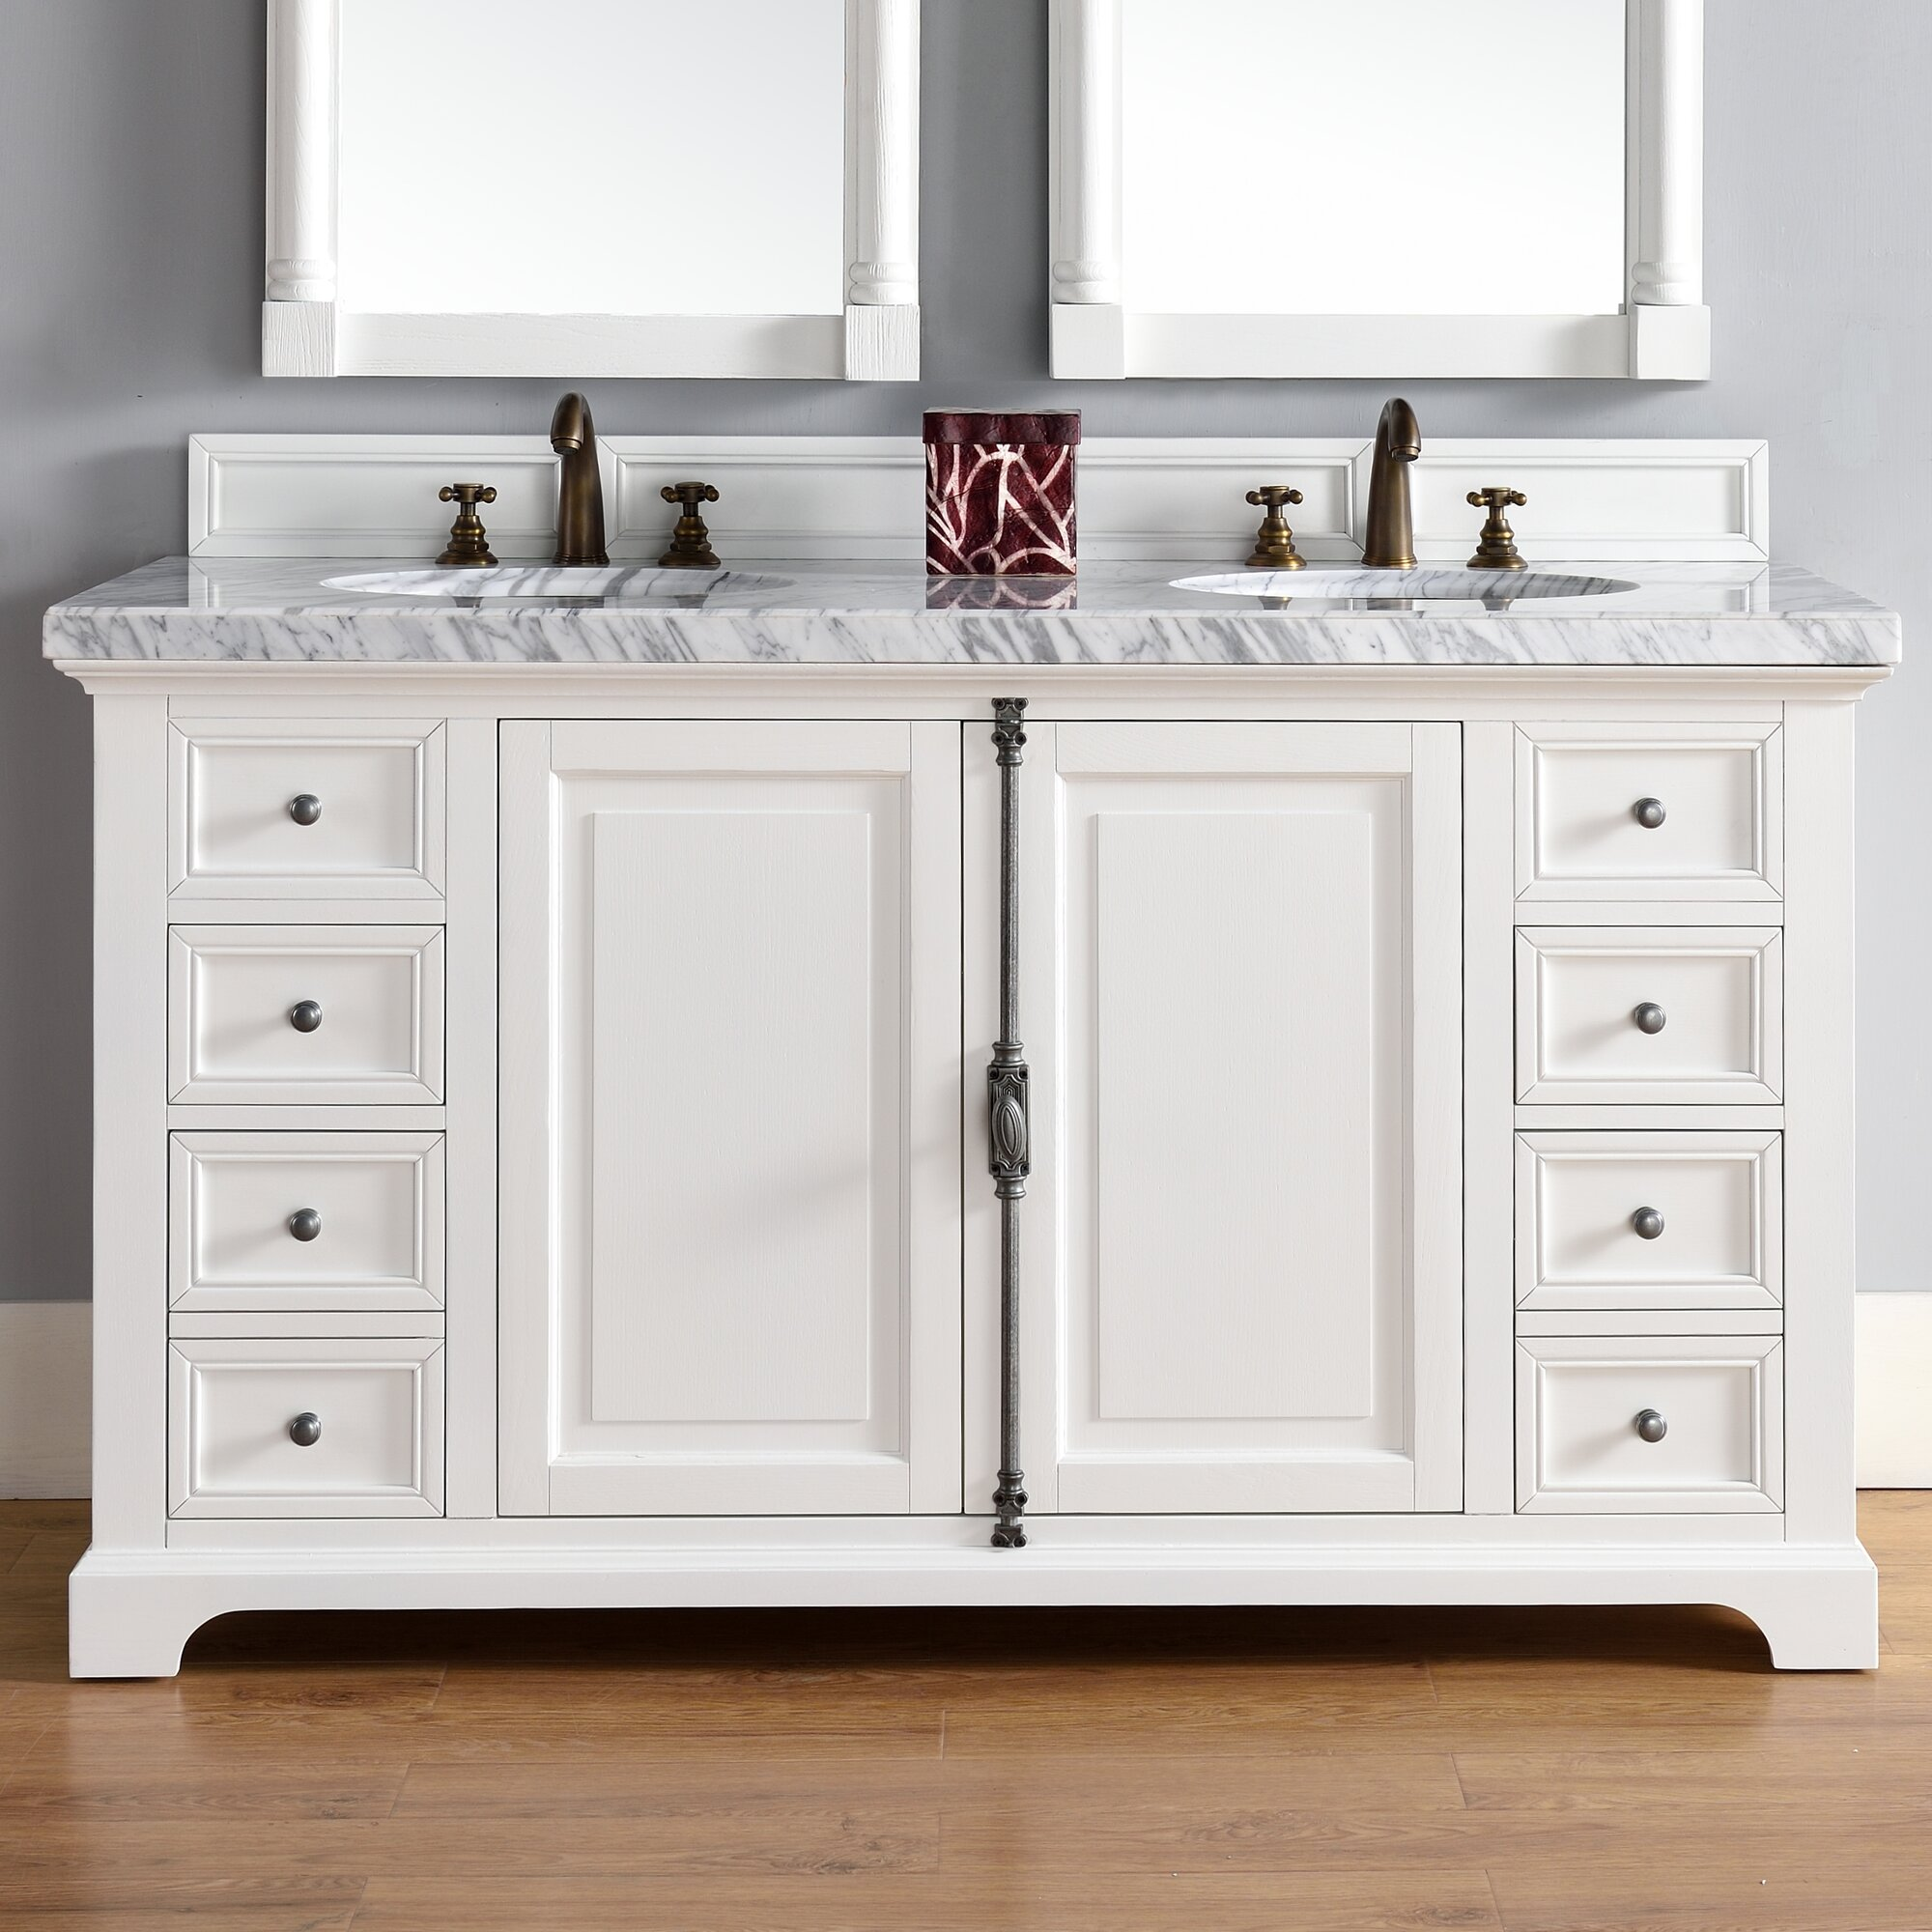 James martin furniture providence 60 double cottage white - Wayfair furniture bathroom vanities ...